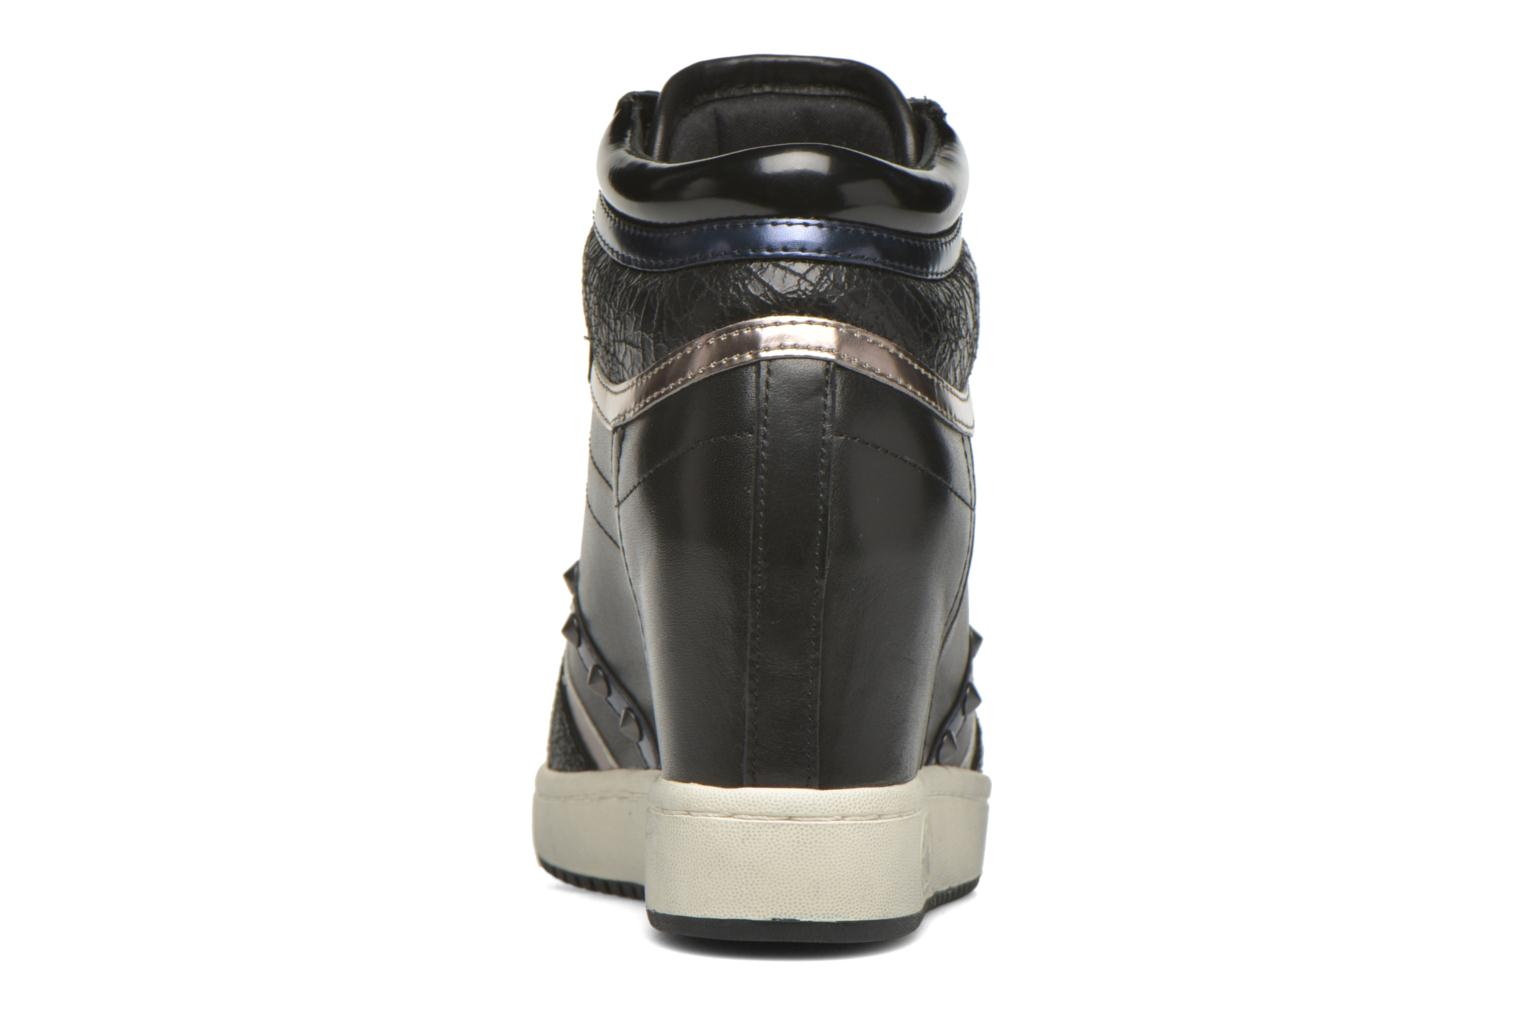 Prince Crack Nappa Calf Black